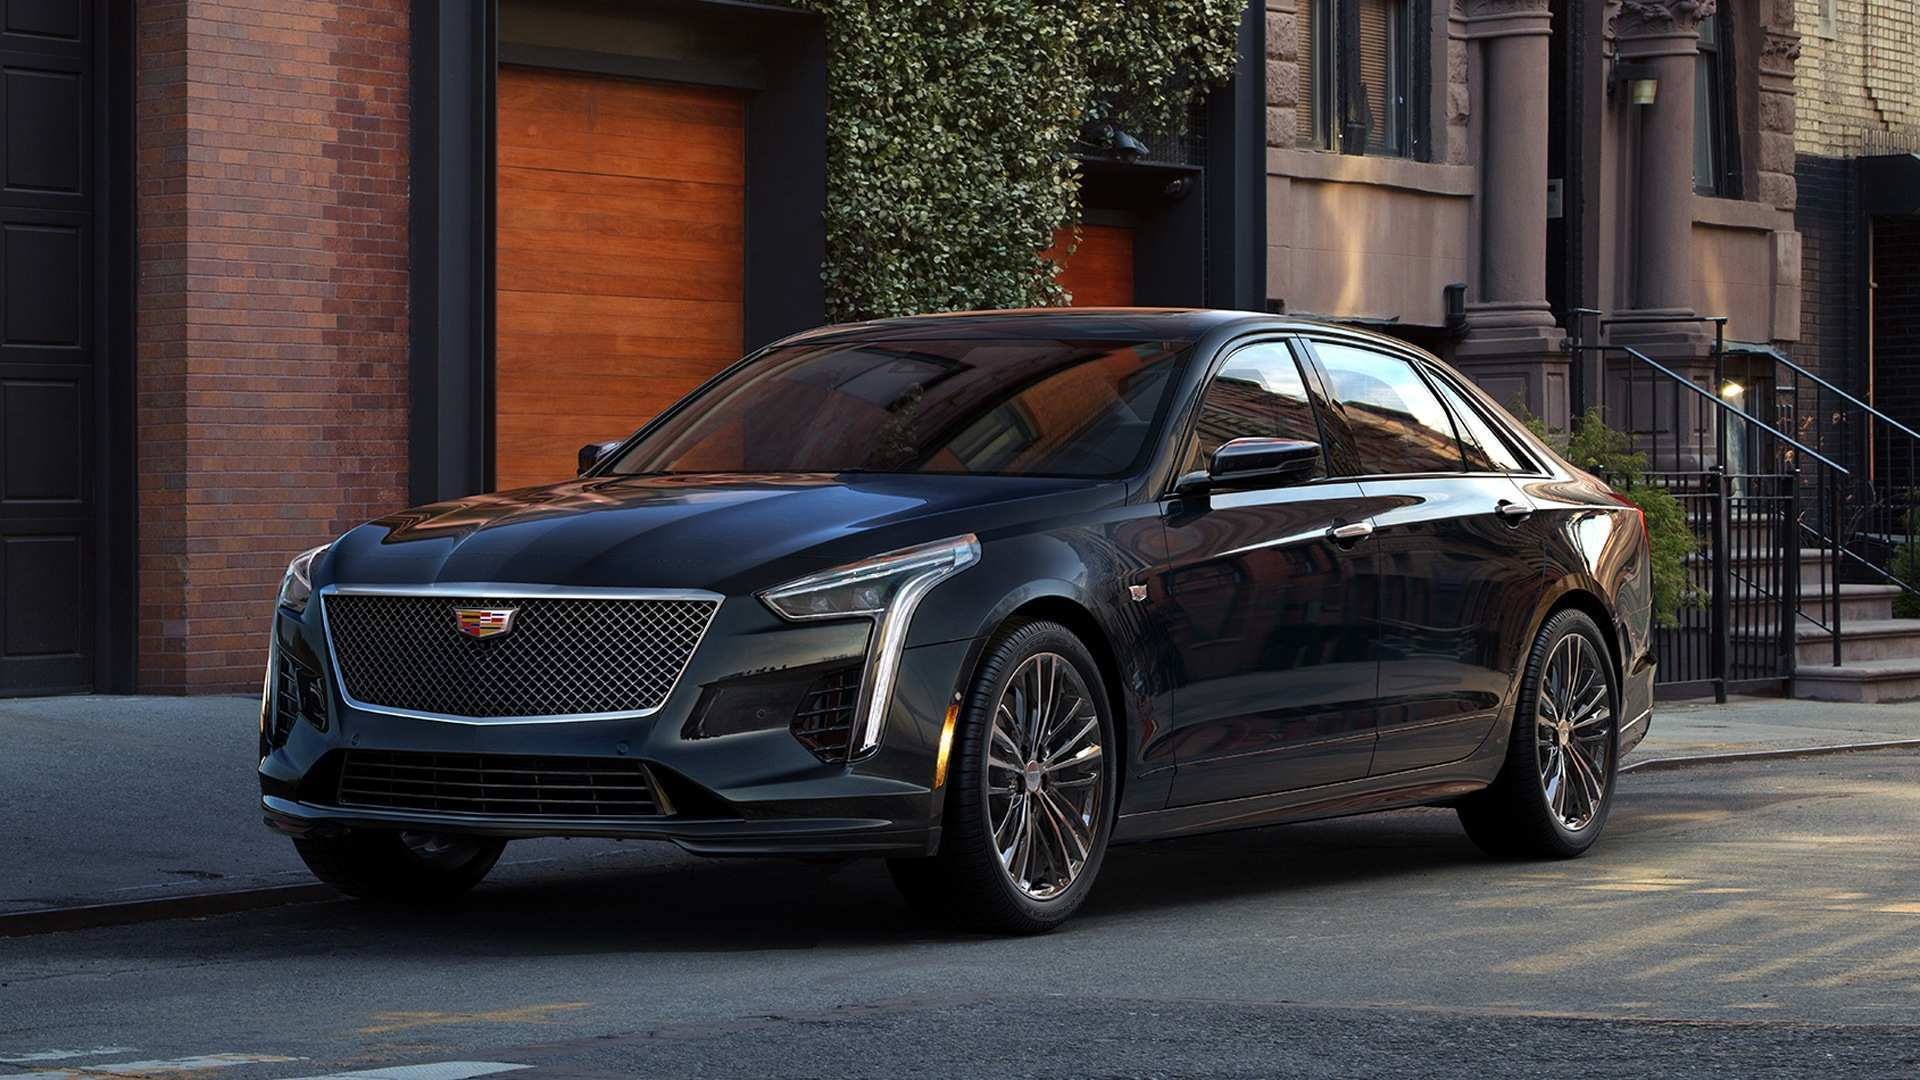 57 New 2019 Cadillac News Performance for 2019 Cadillac News